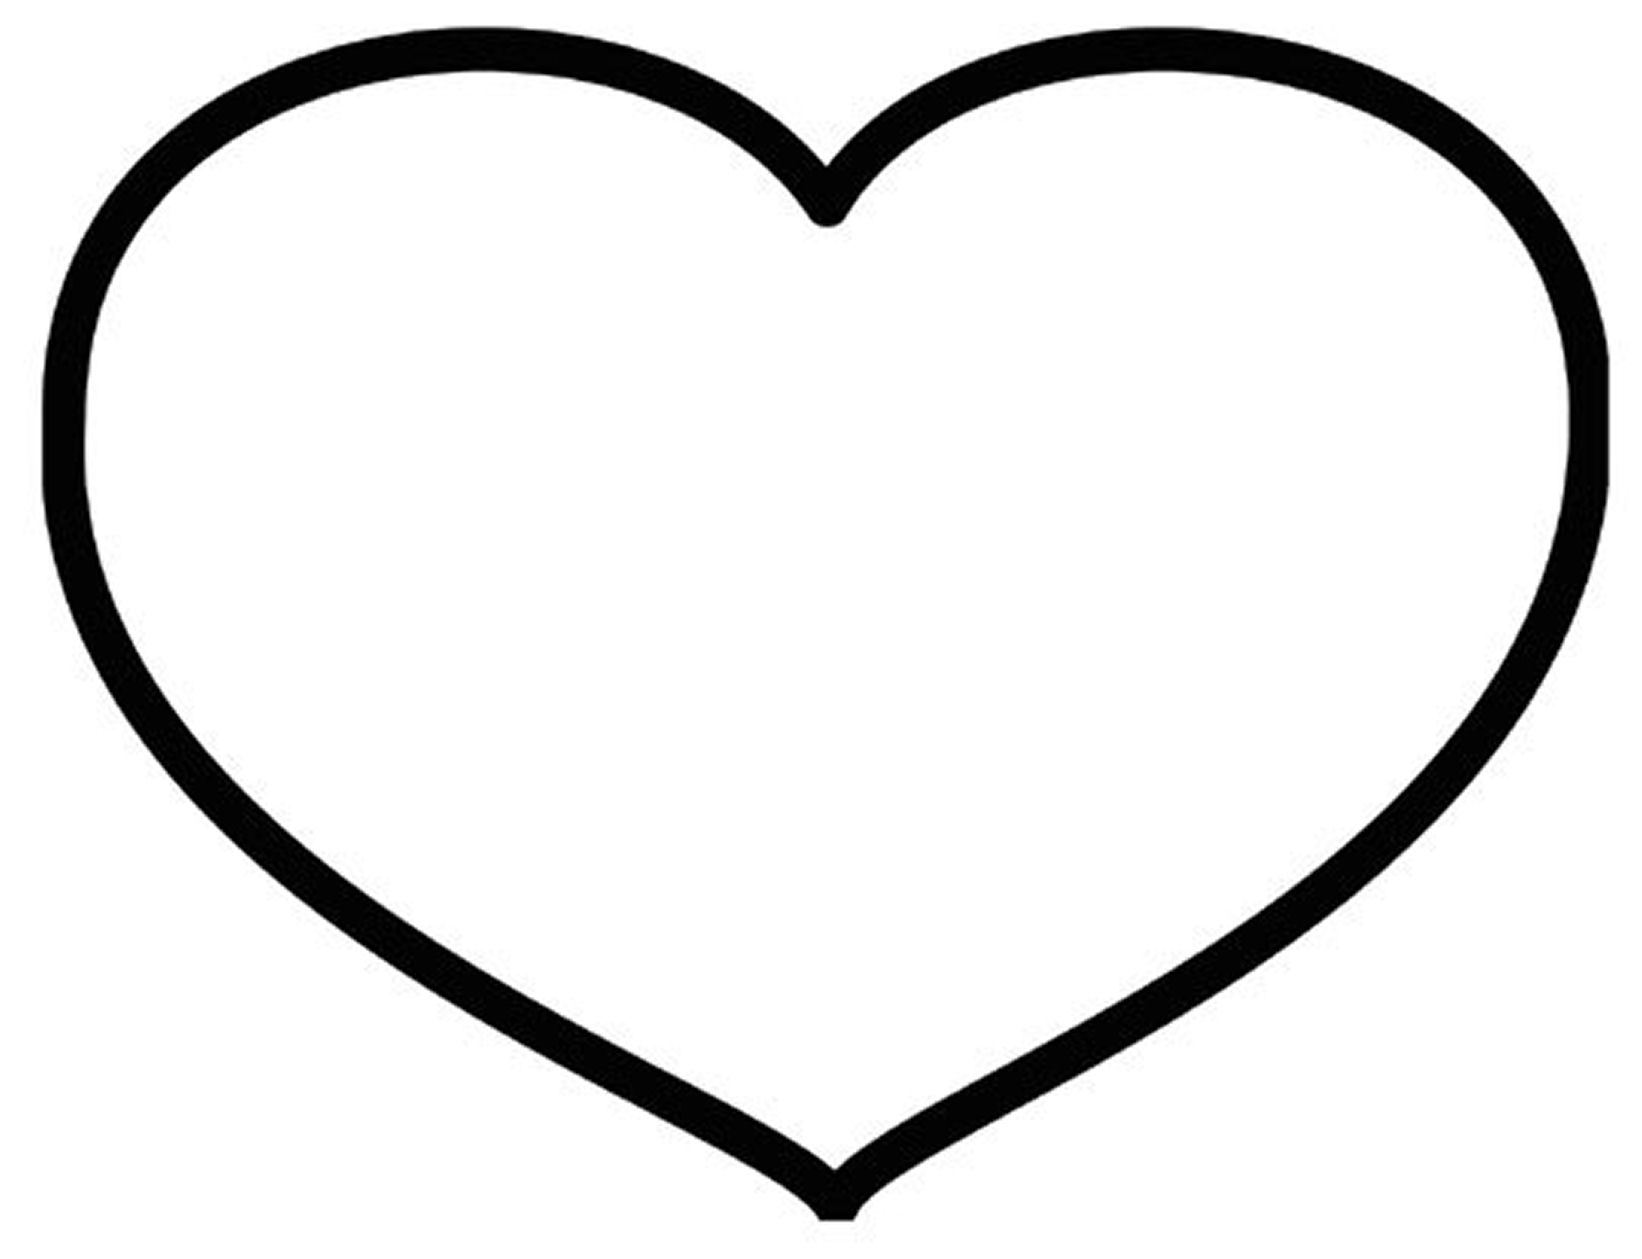 heart clipart coloring page heart clip art at clkercom vector clip art online page clipart heart coloring